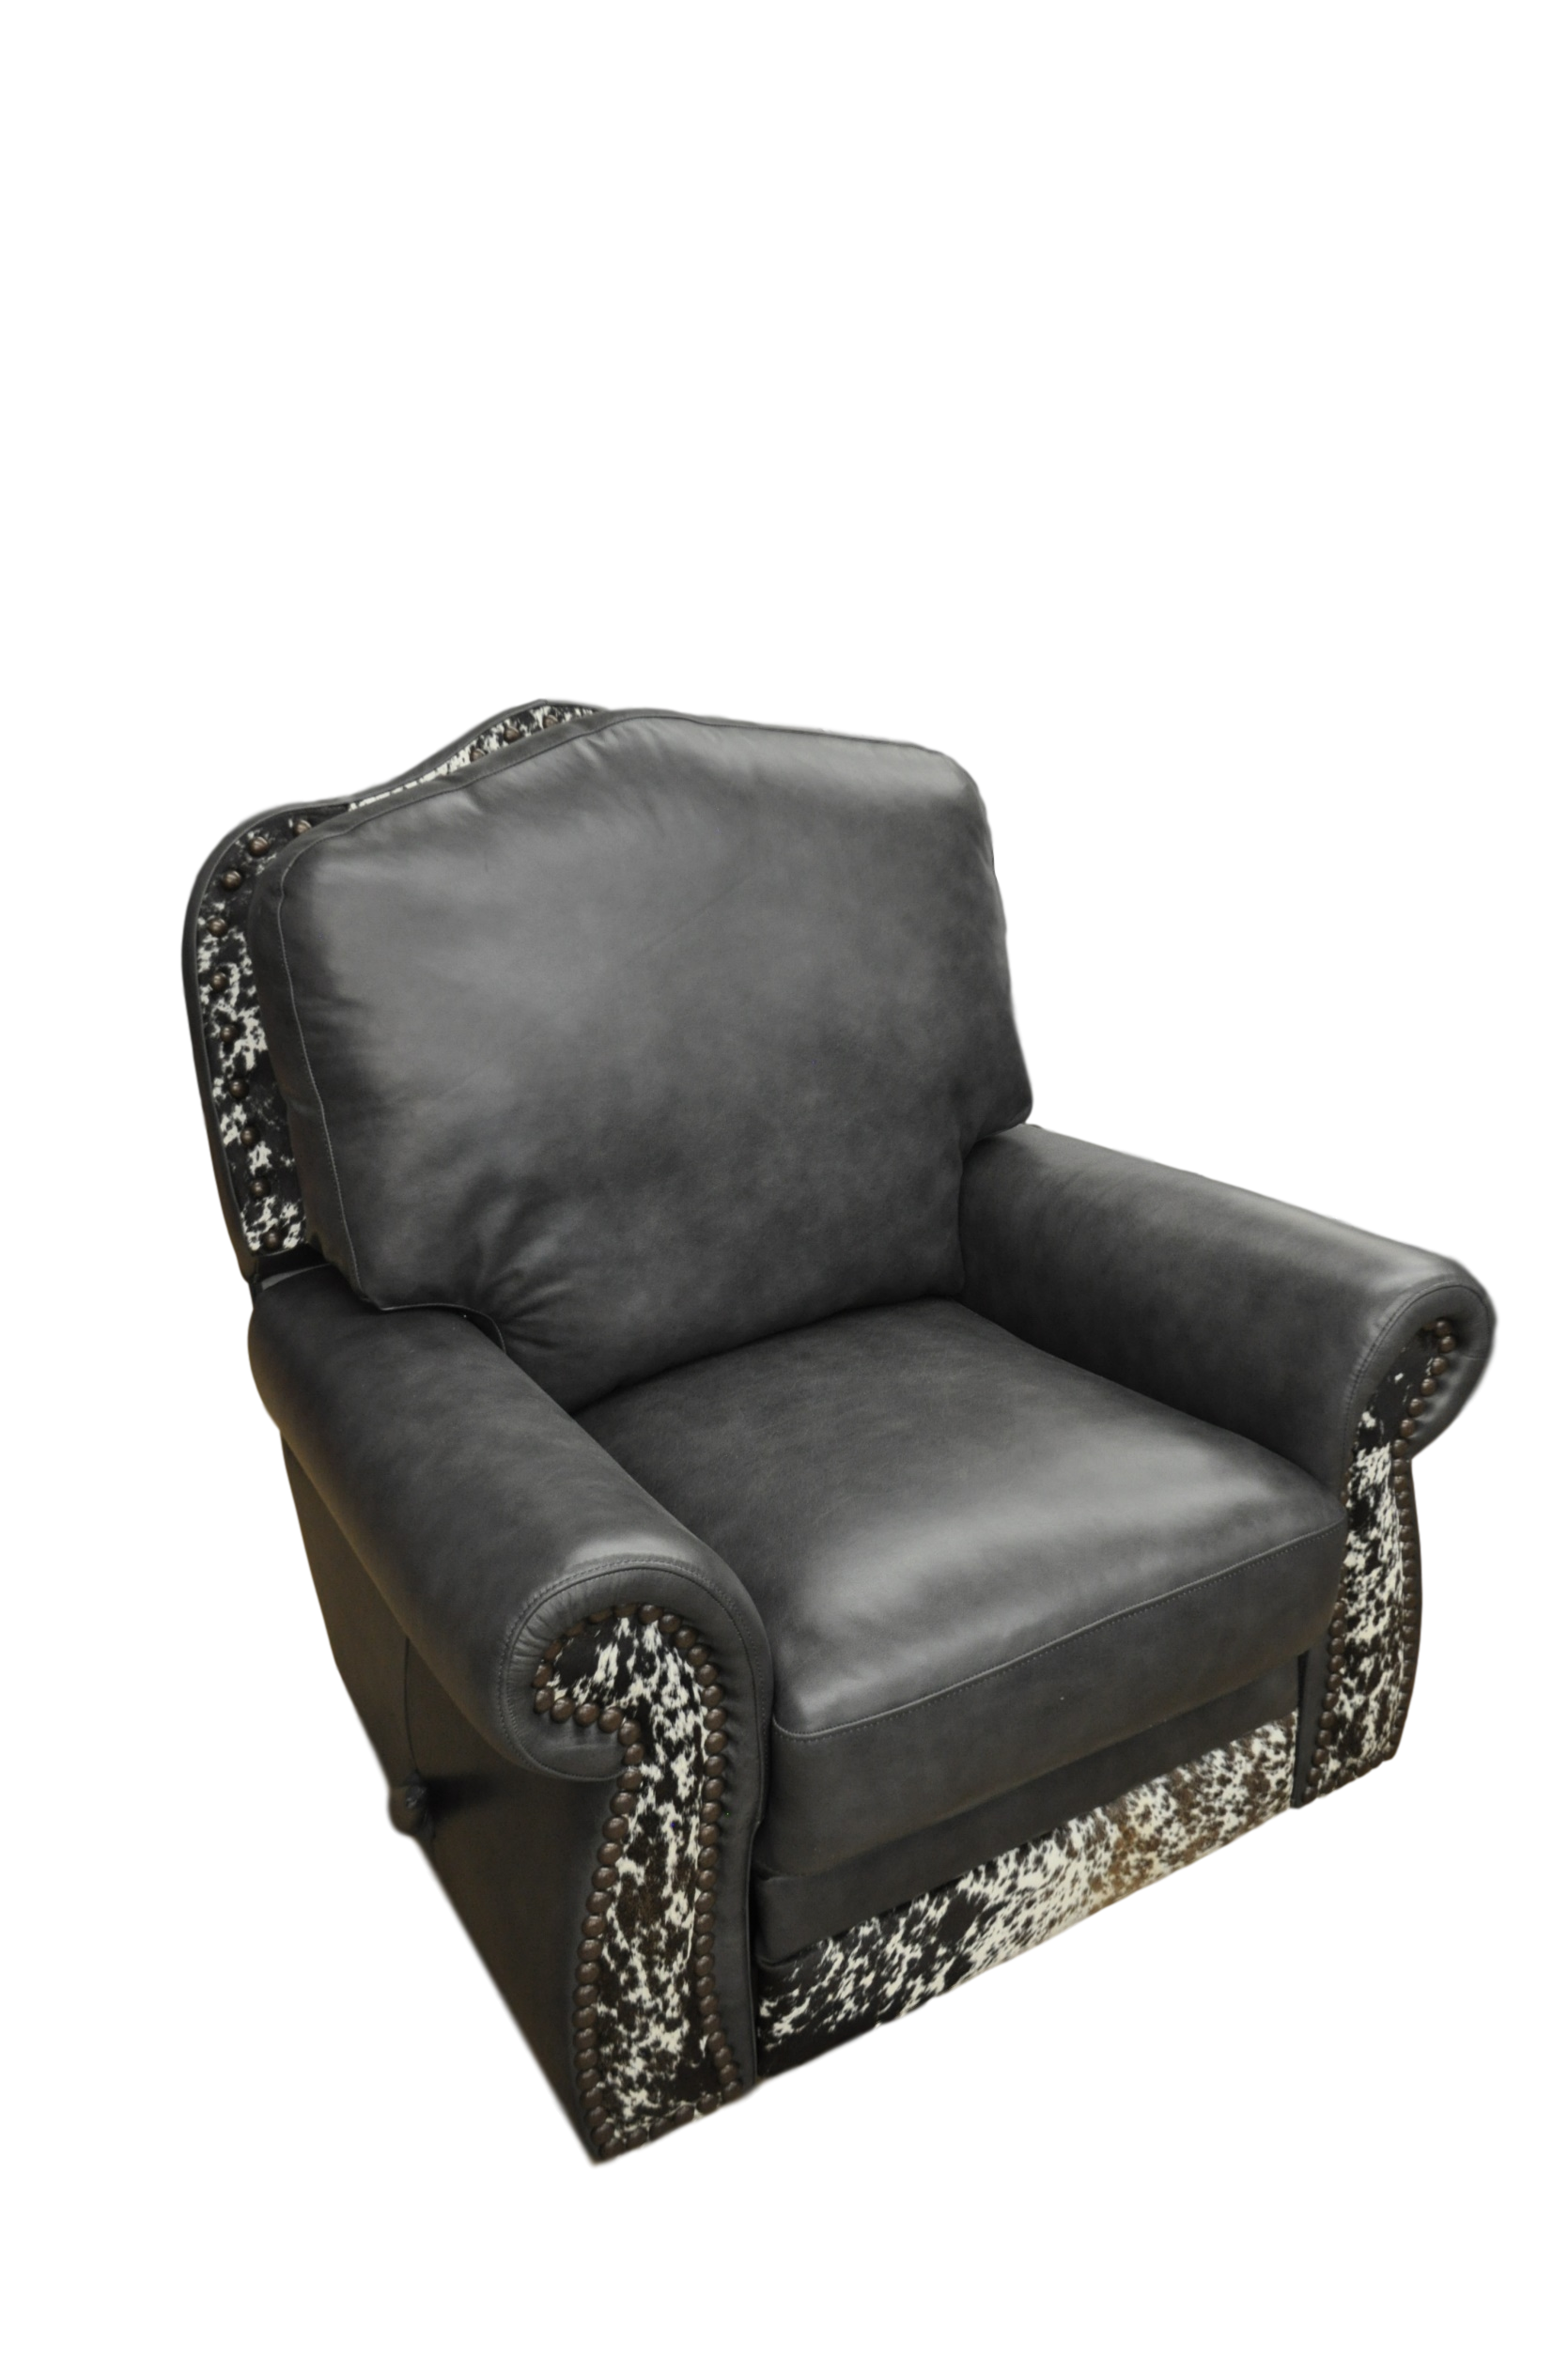 Look recliner front view